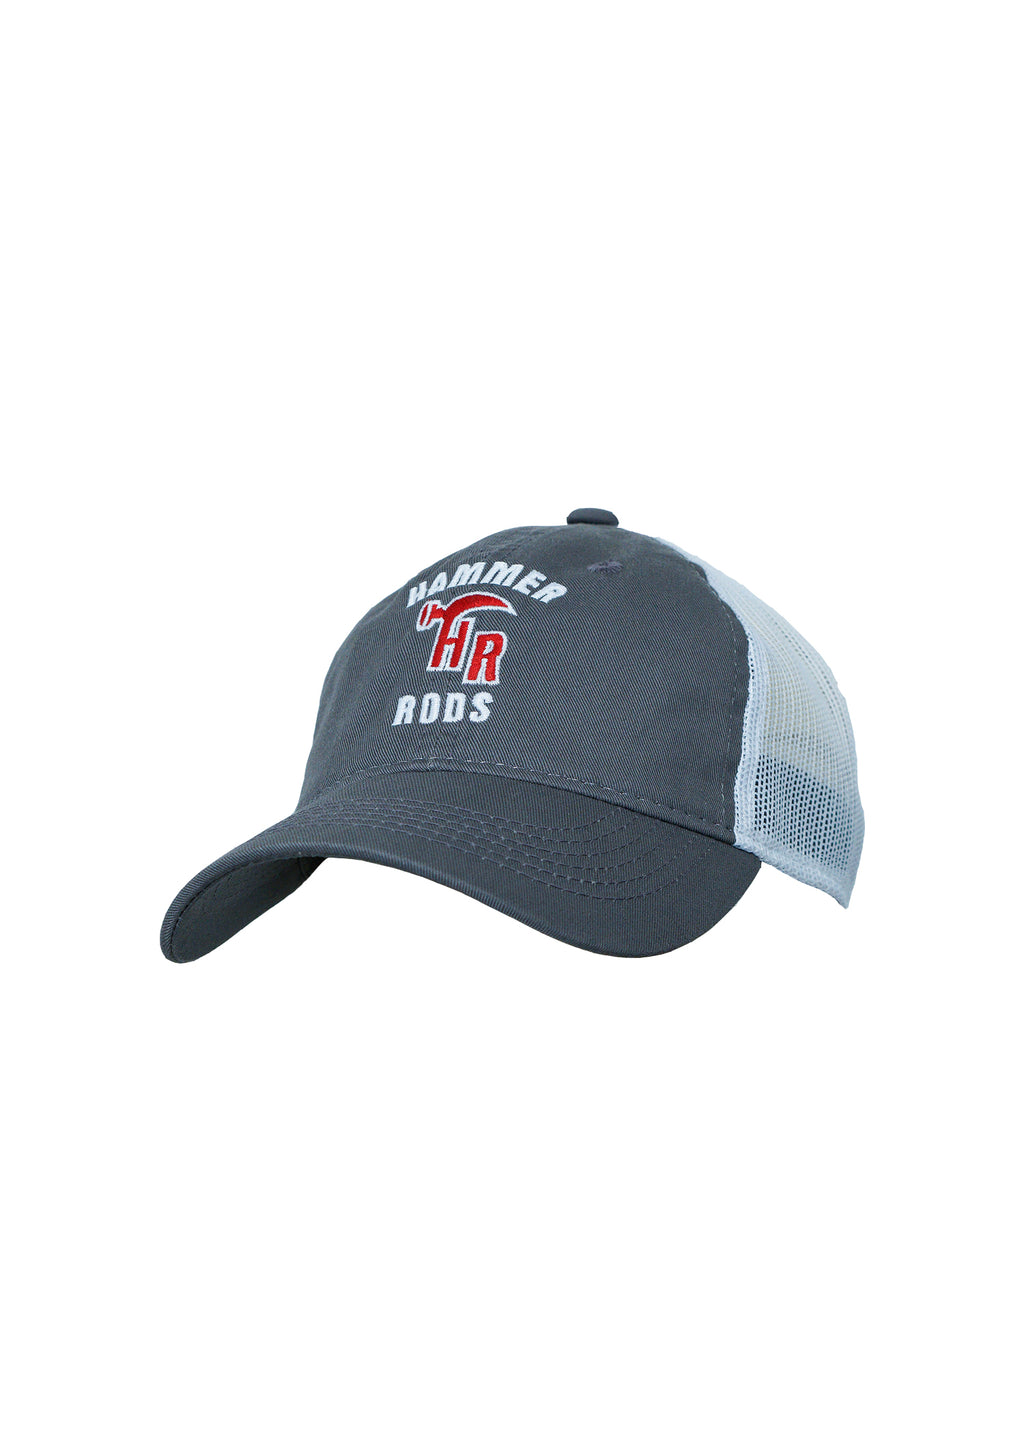 Hammer Platinum Fit Cap - Grey & White